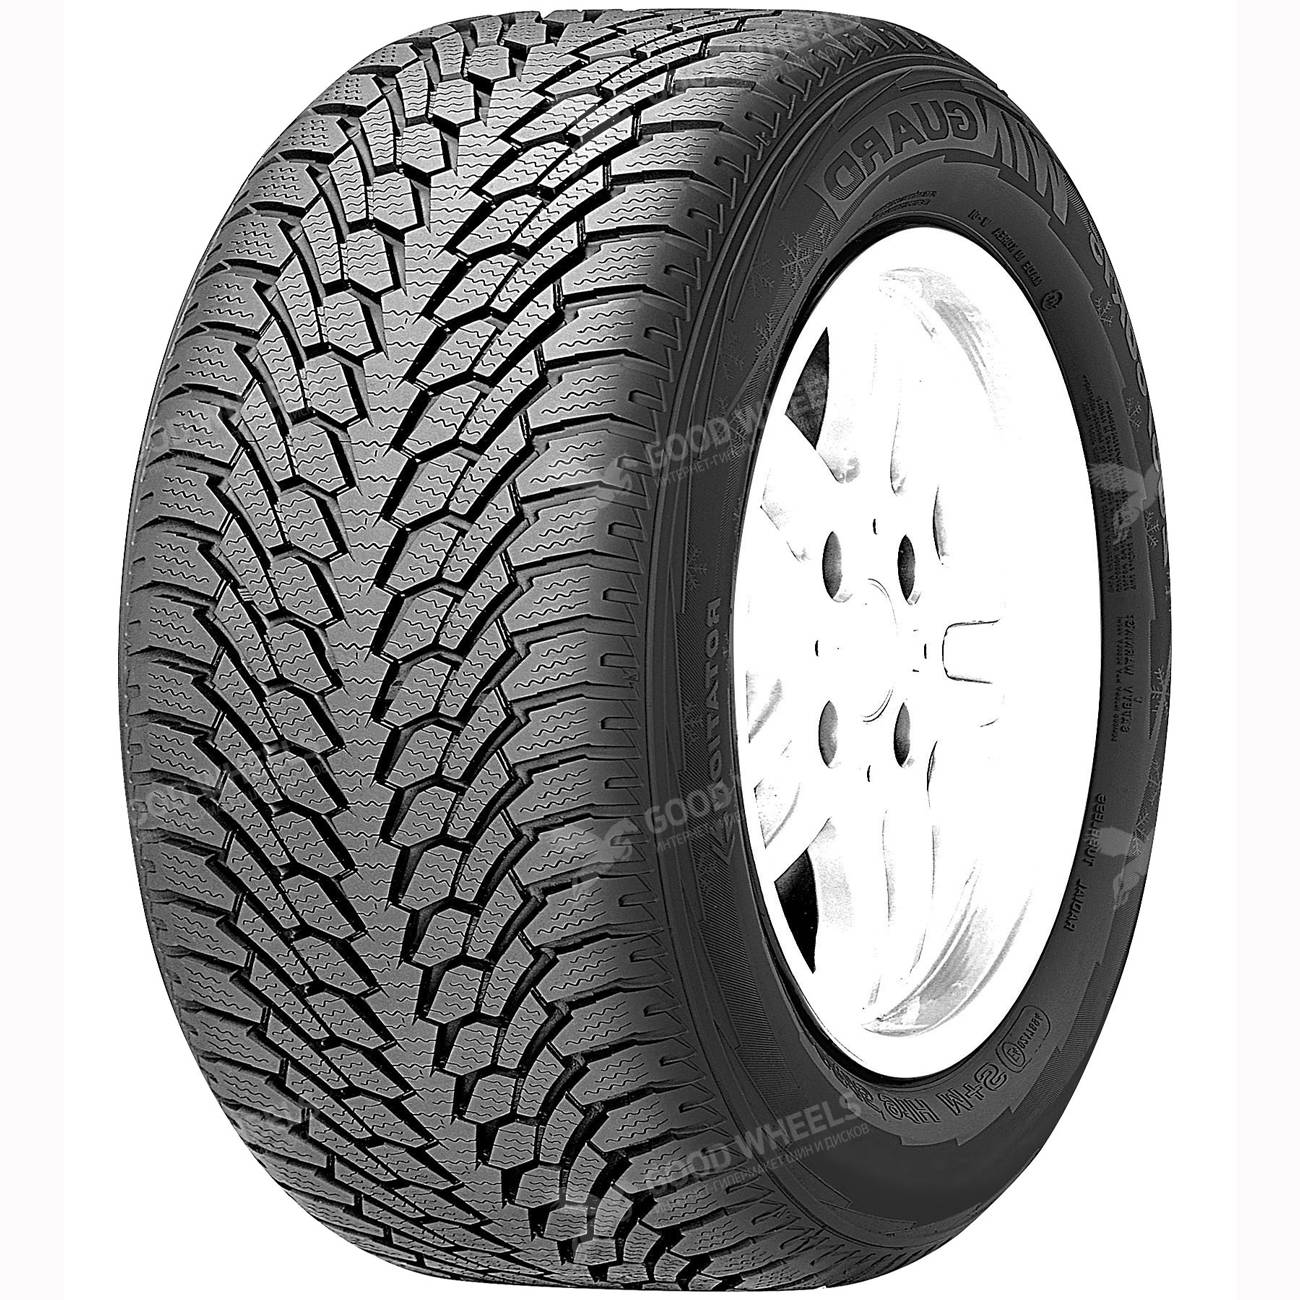 Nexen Winguard 225/60 R16 98T